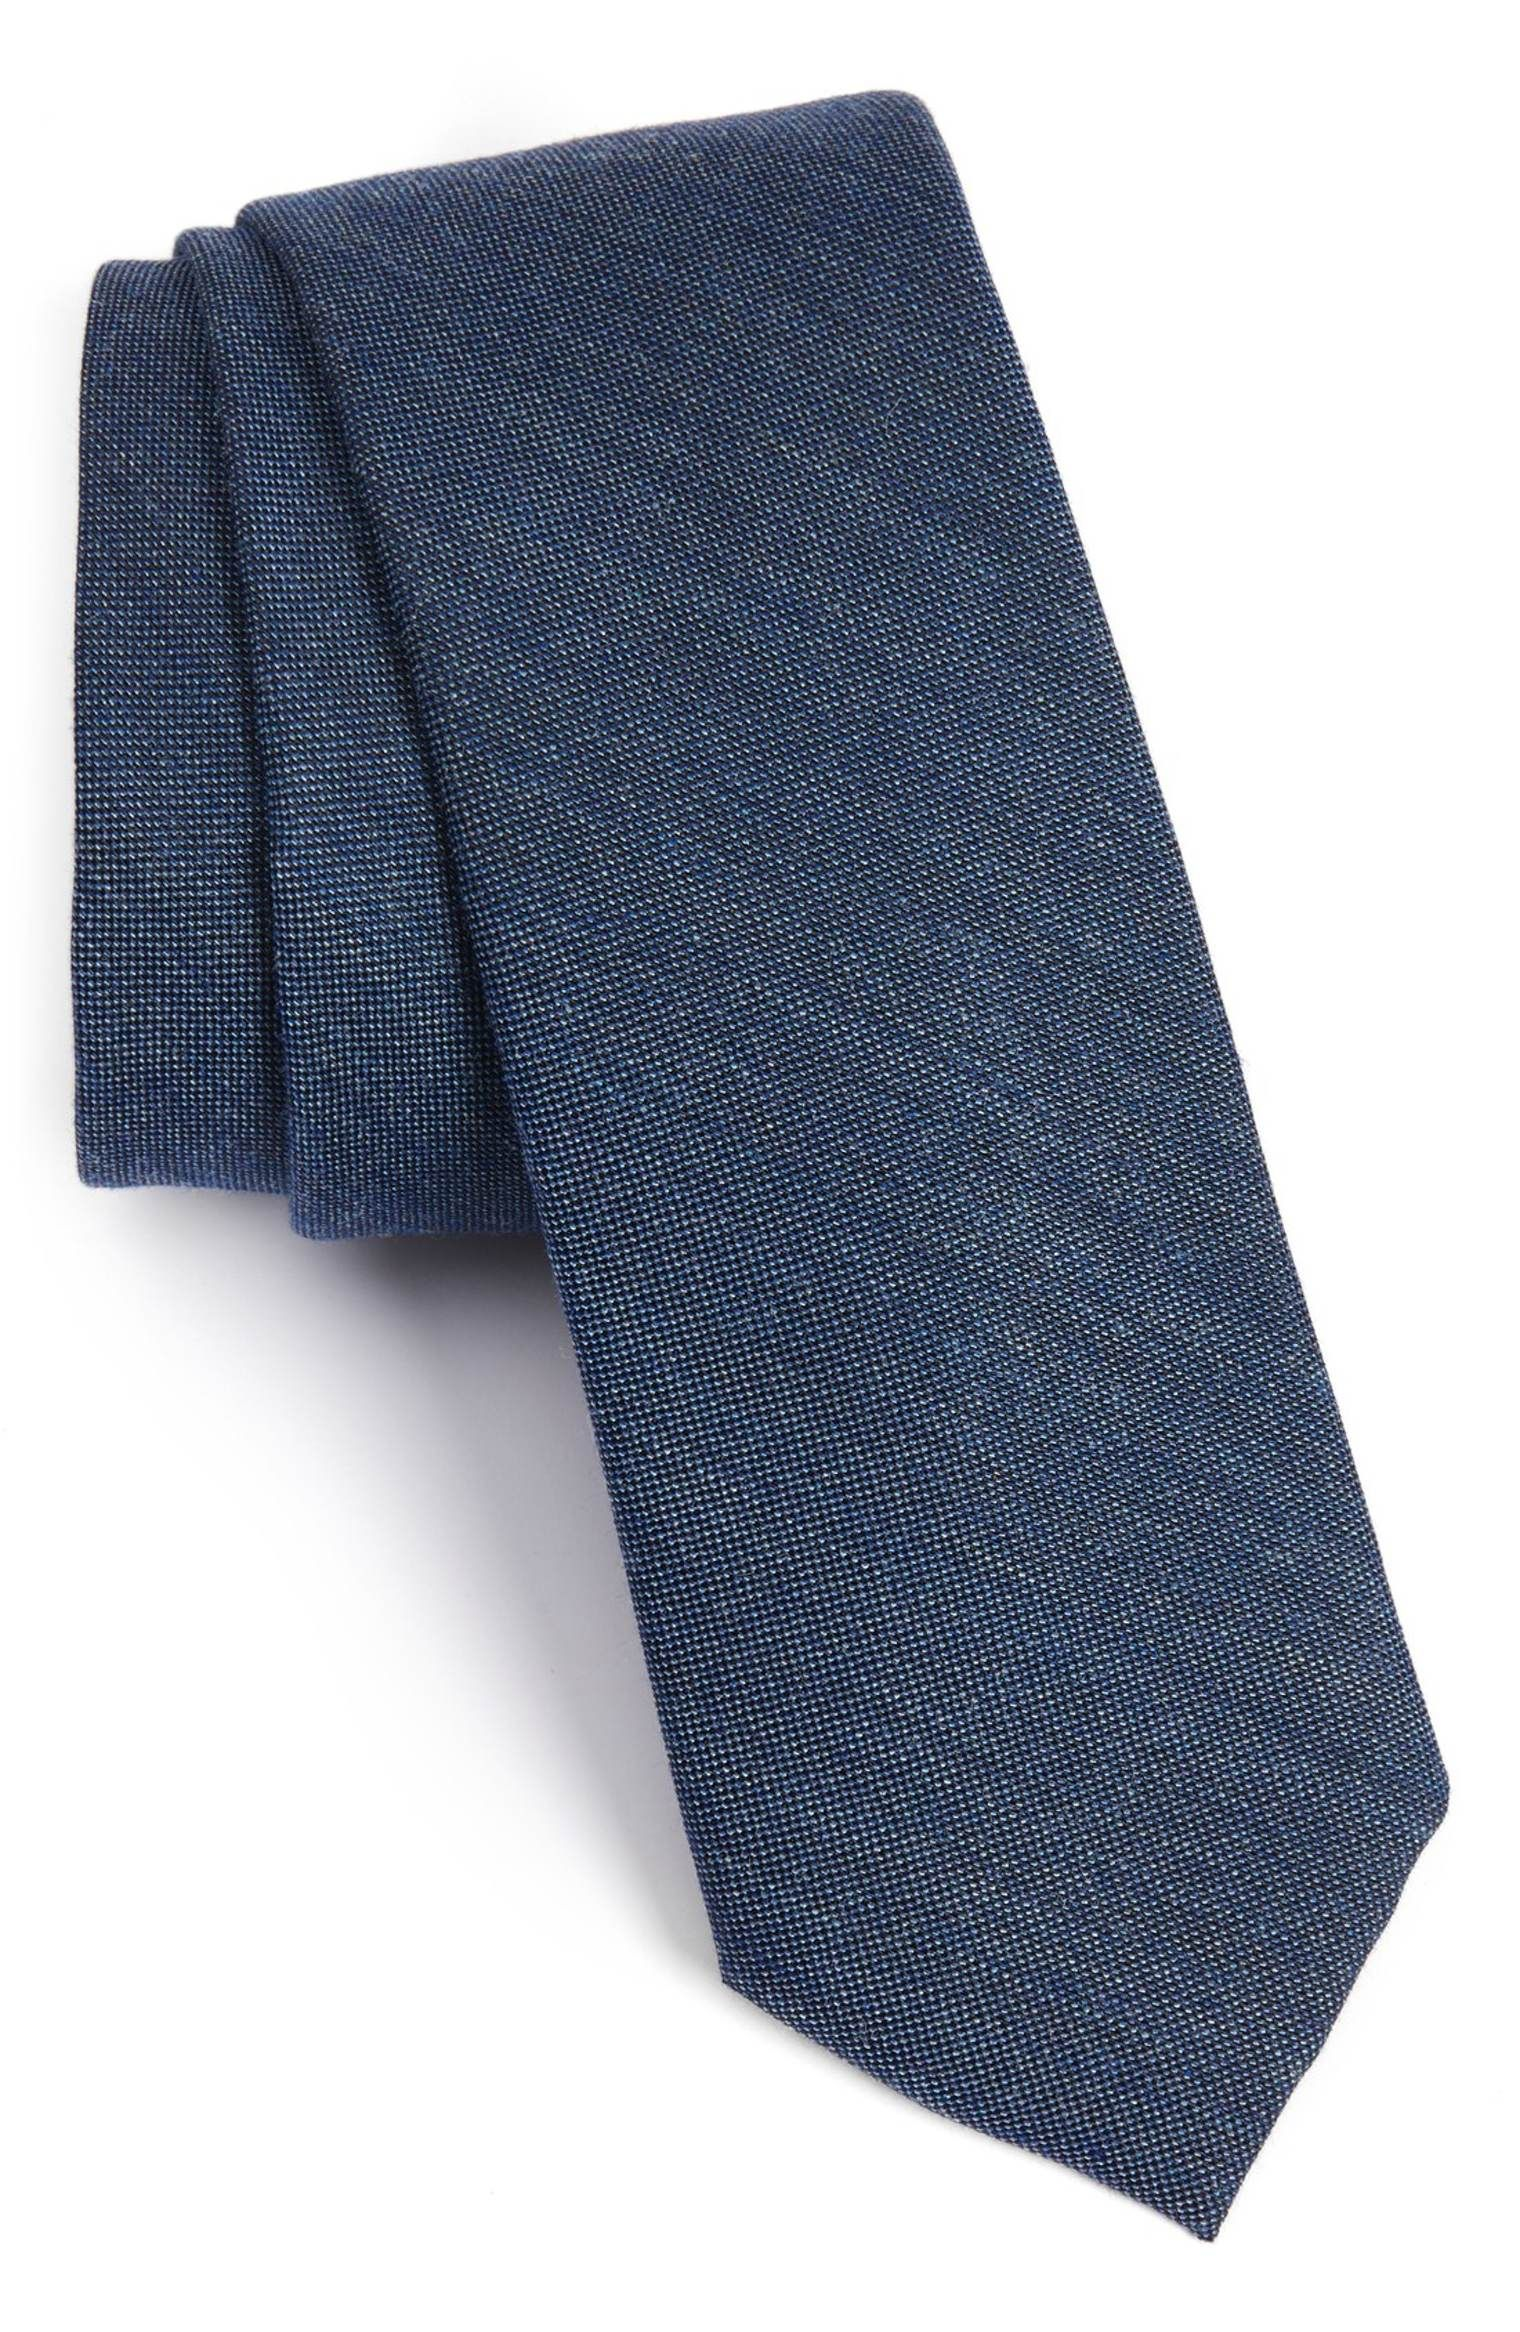 Men/'s Brand New silk ties in a choice of patterns